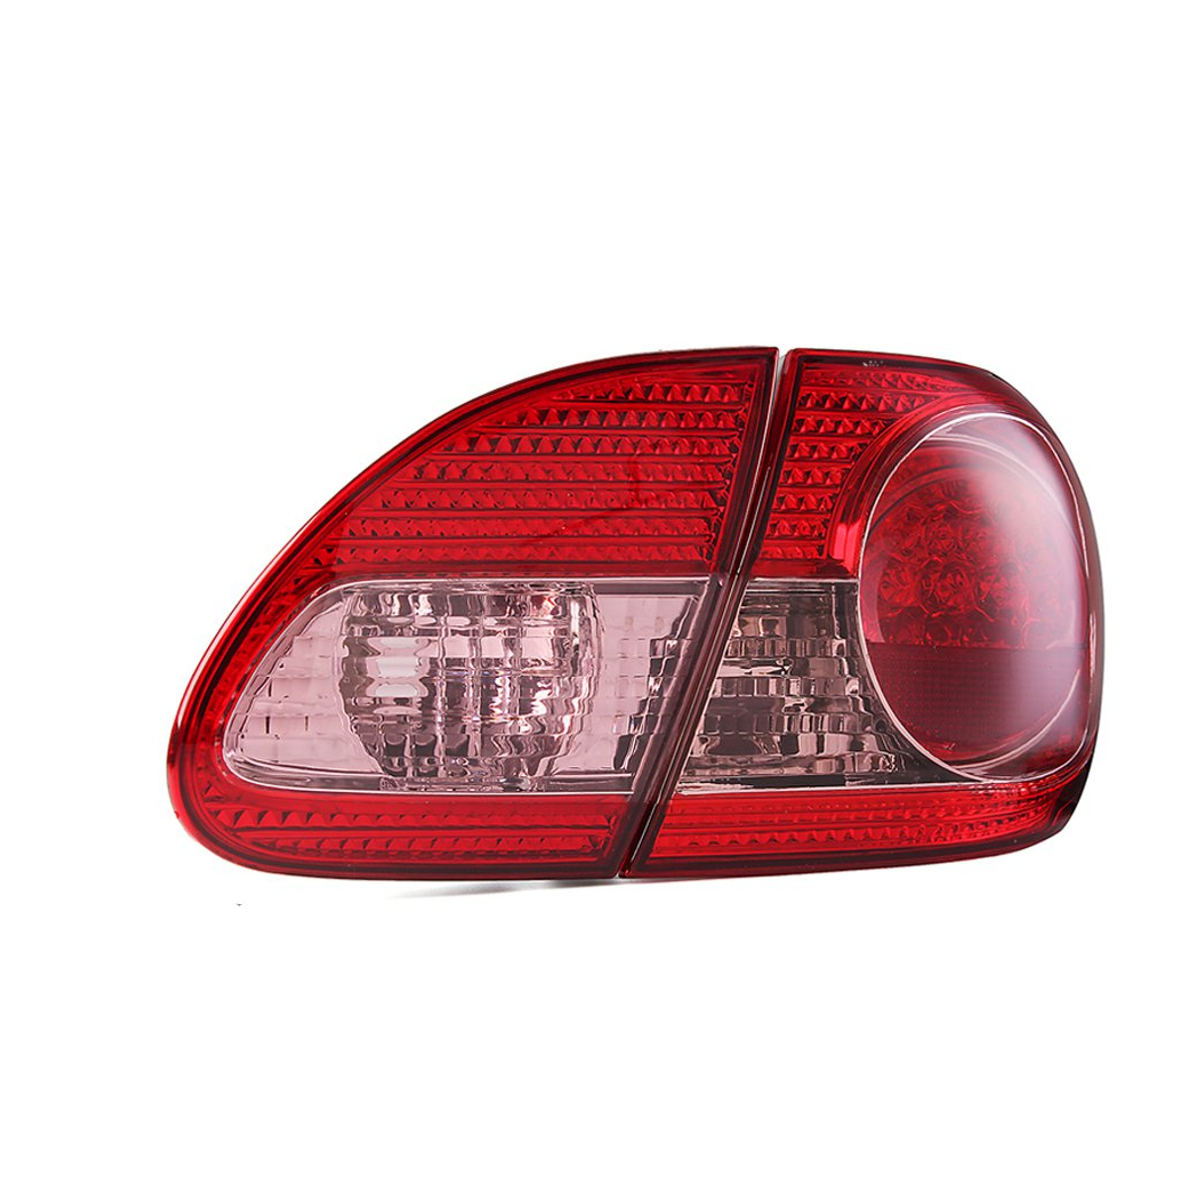 Car Rear Right Tail Light Cover Red with No Bulb for Toyota Corolla 2003-2008 TO2801144